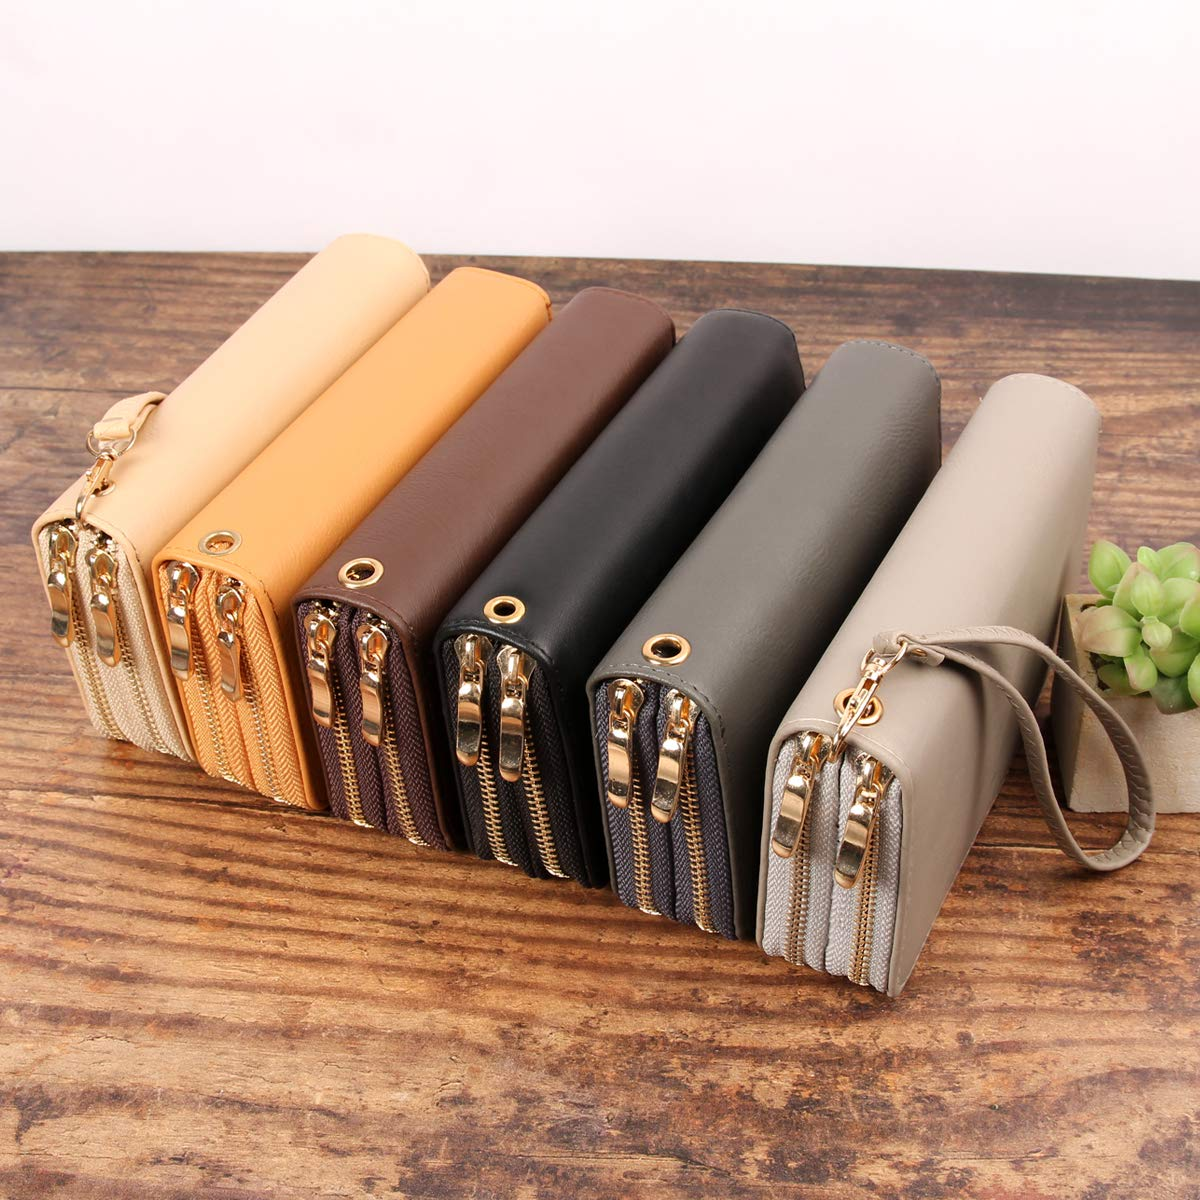 Classic Zip Around Wallet - PU Leather Double Zipper Clutch Purse with Card & Phone Slots, Removable Wristlet Strap (Sand) by MYS Collection (Image #5)